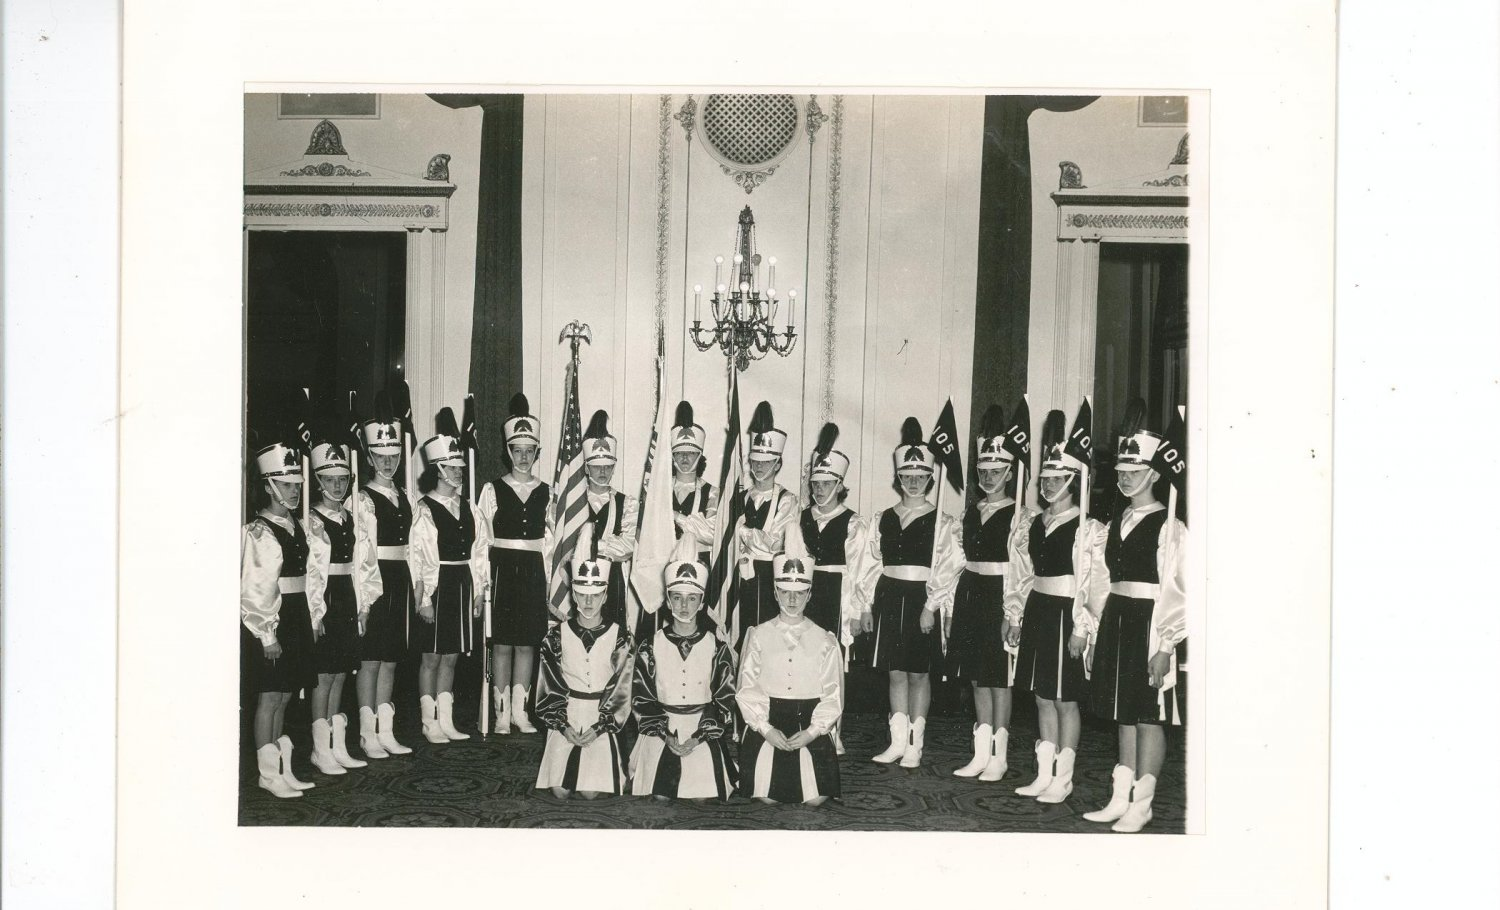 Vintage B&W Marching Band Photo Empire Room The Palmer House A Hilton Hotel